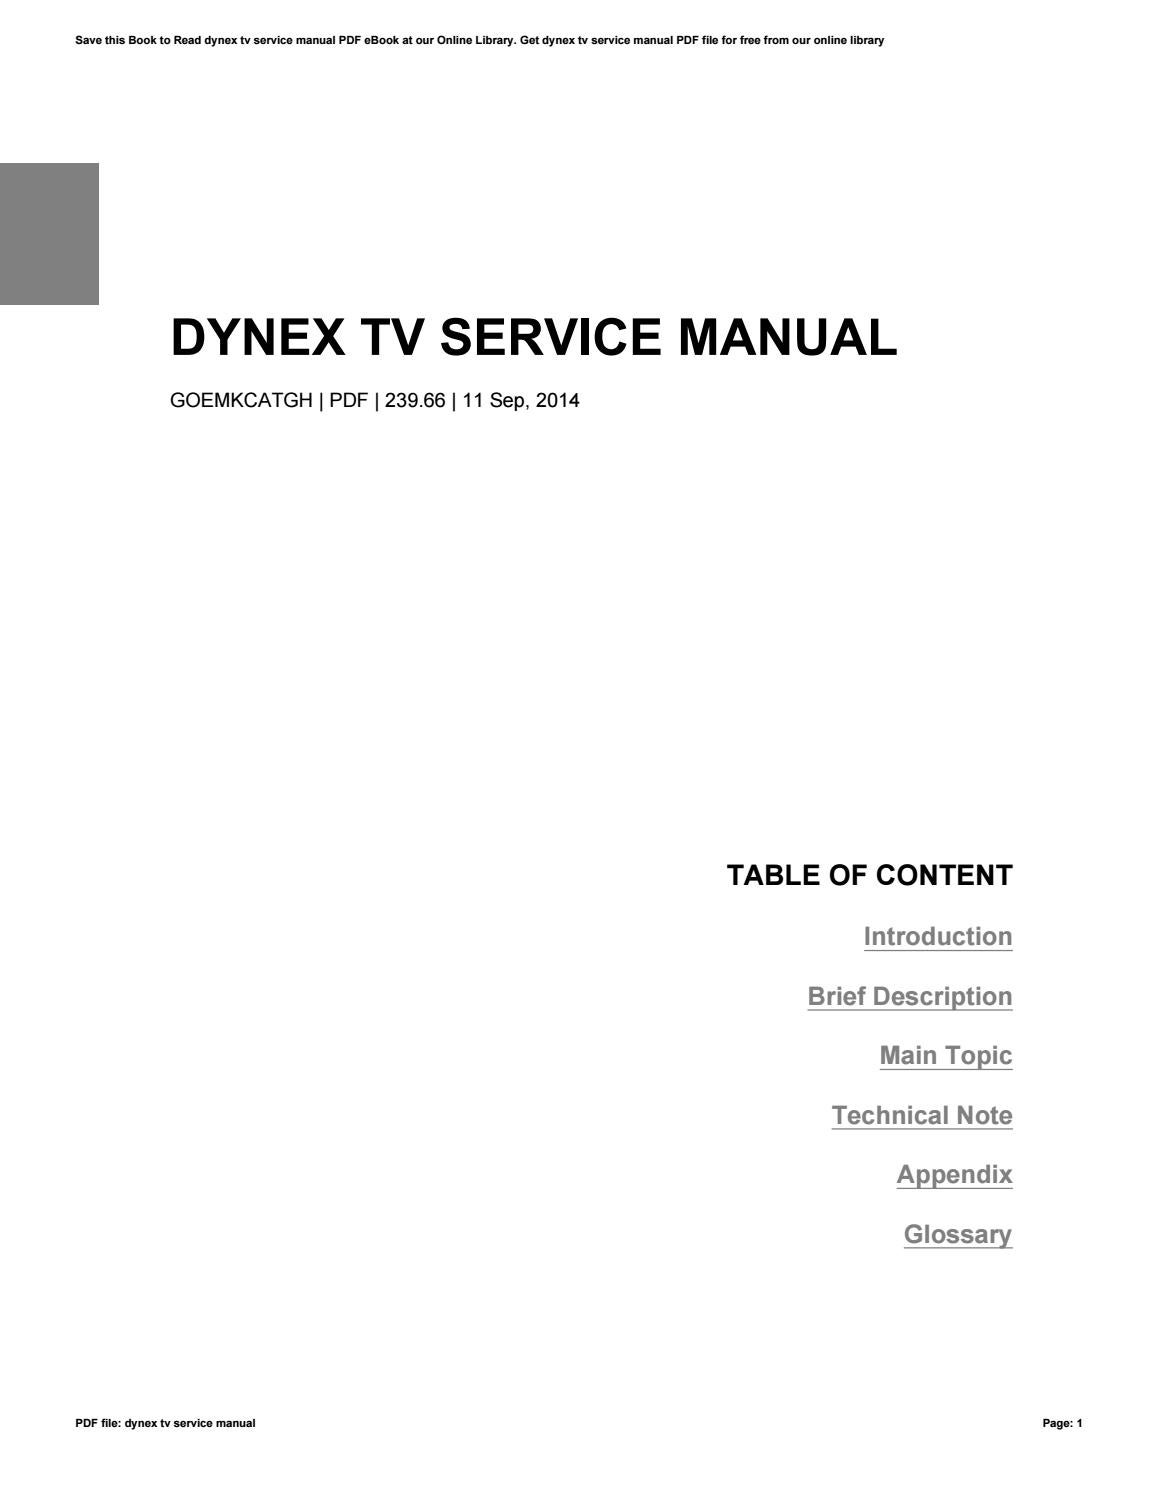 Dynex 42 inch tv manual ebook array dynex 42 inch tv manual ebook rh dynex 42 inch tv manual ebook thepivotpoint fandeluxe Image collections